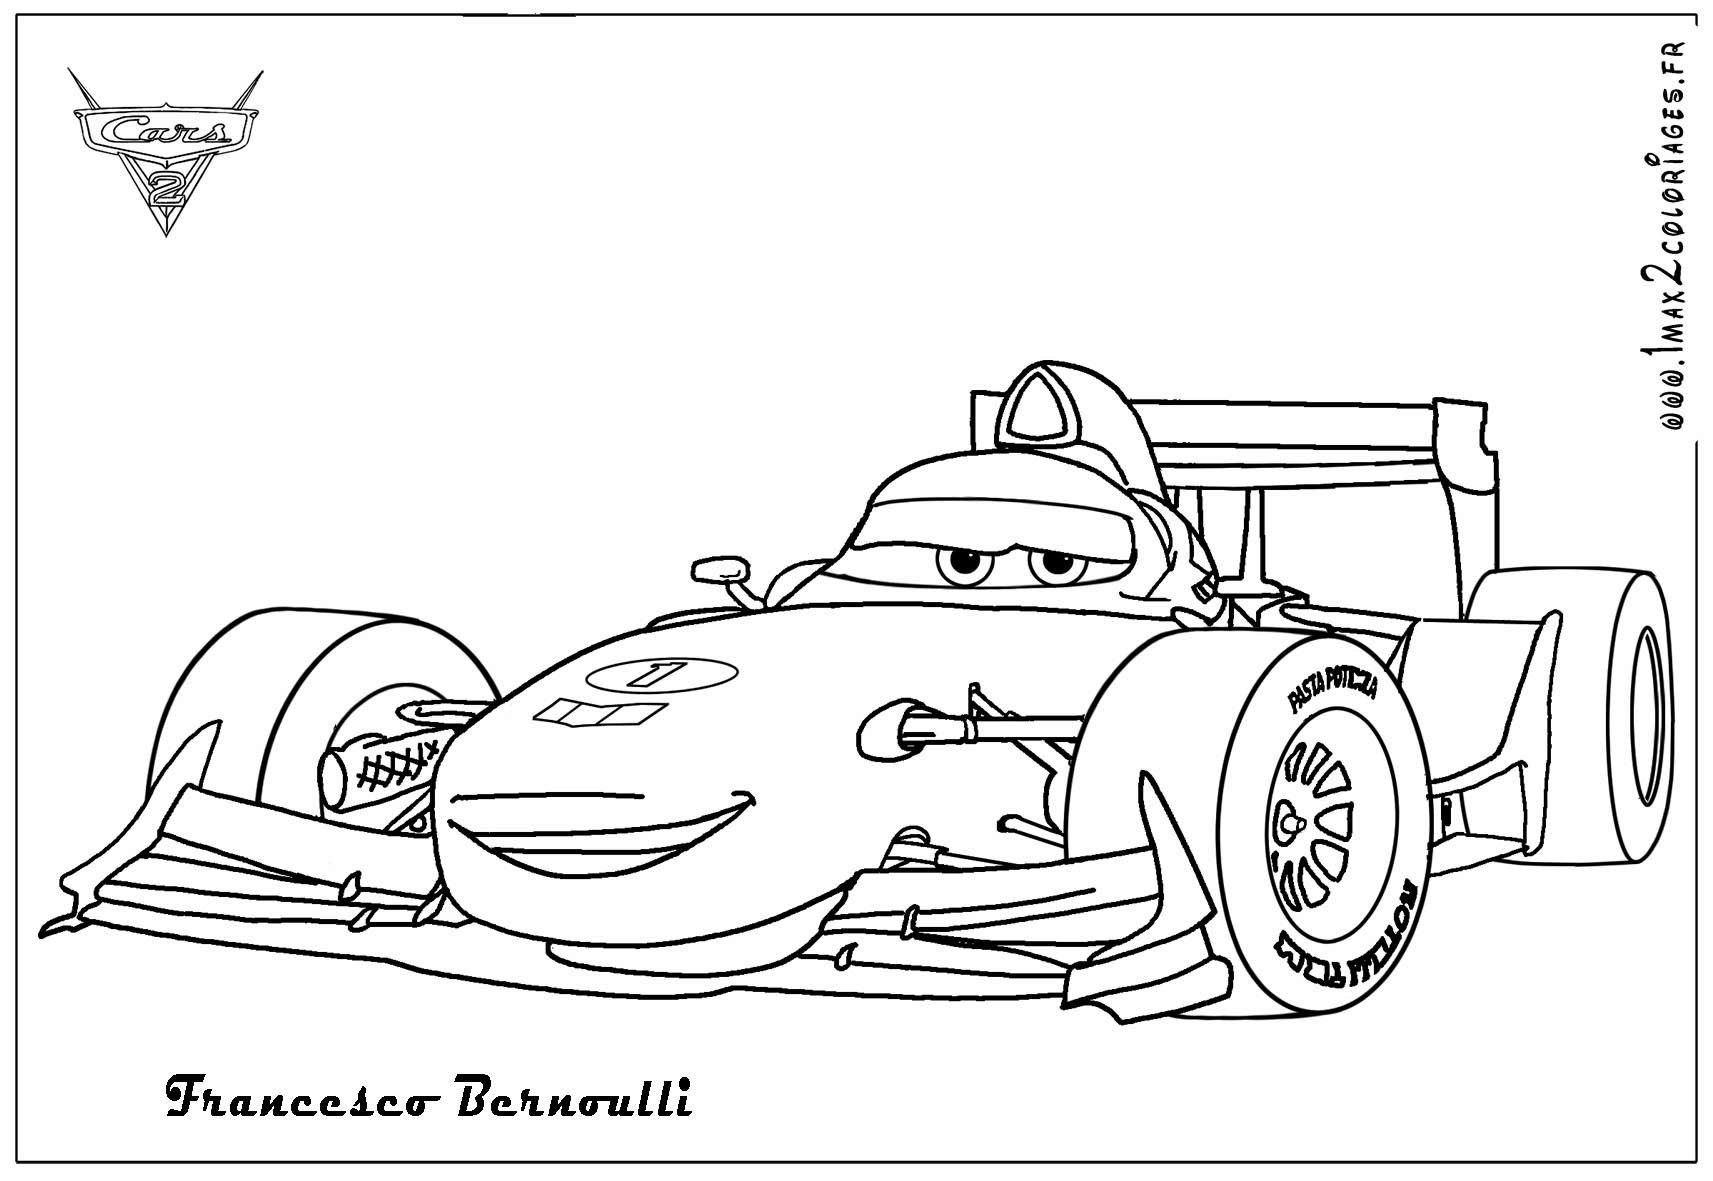 Cars 2 Francesco Bernoulli Coloring Pages – Coloring Pics